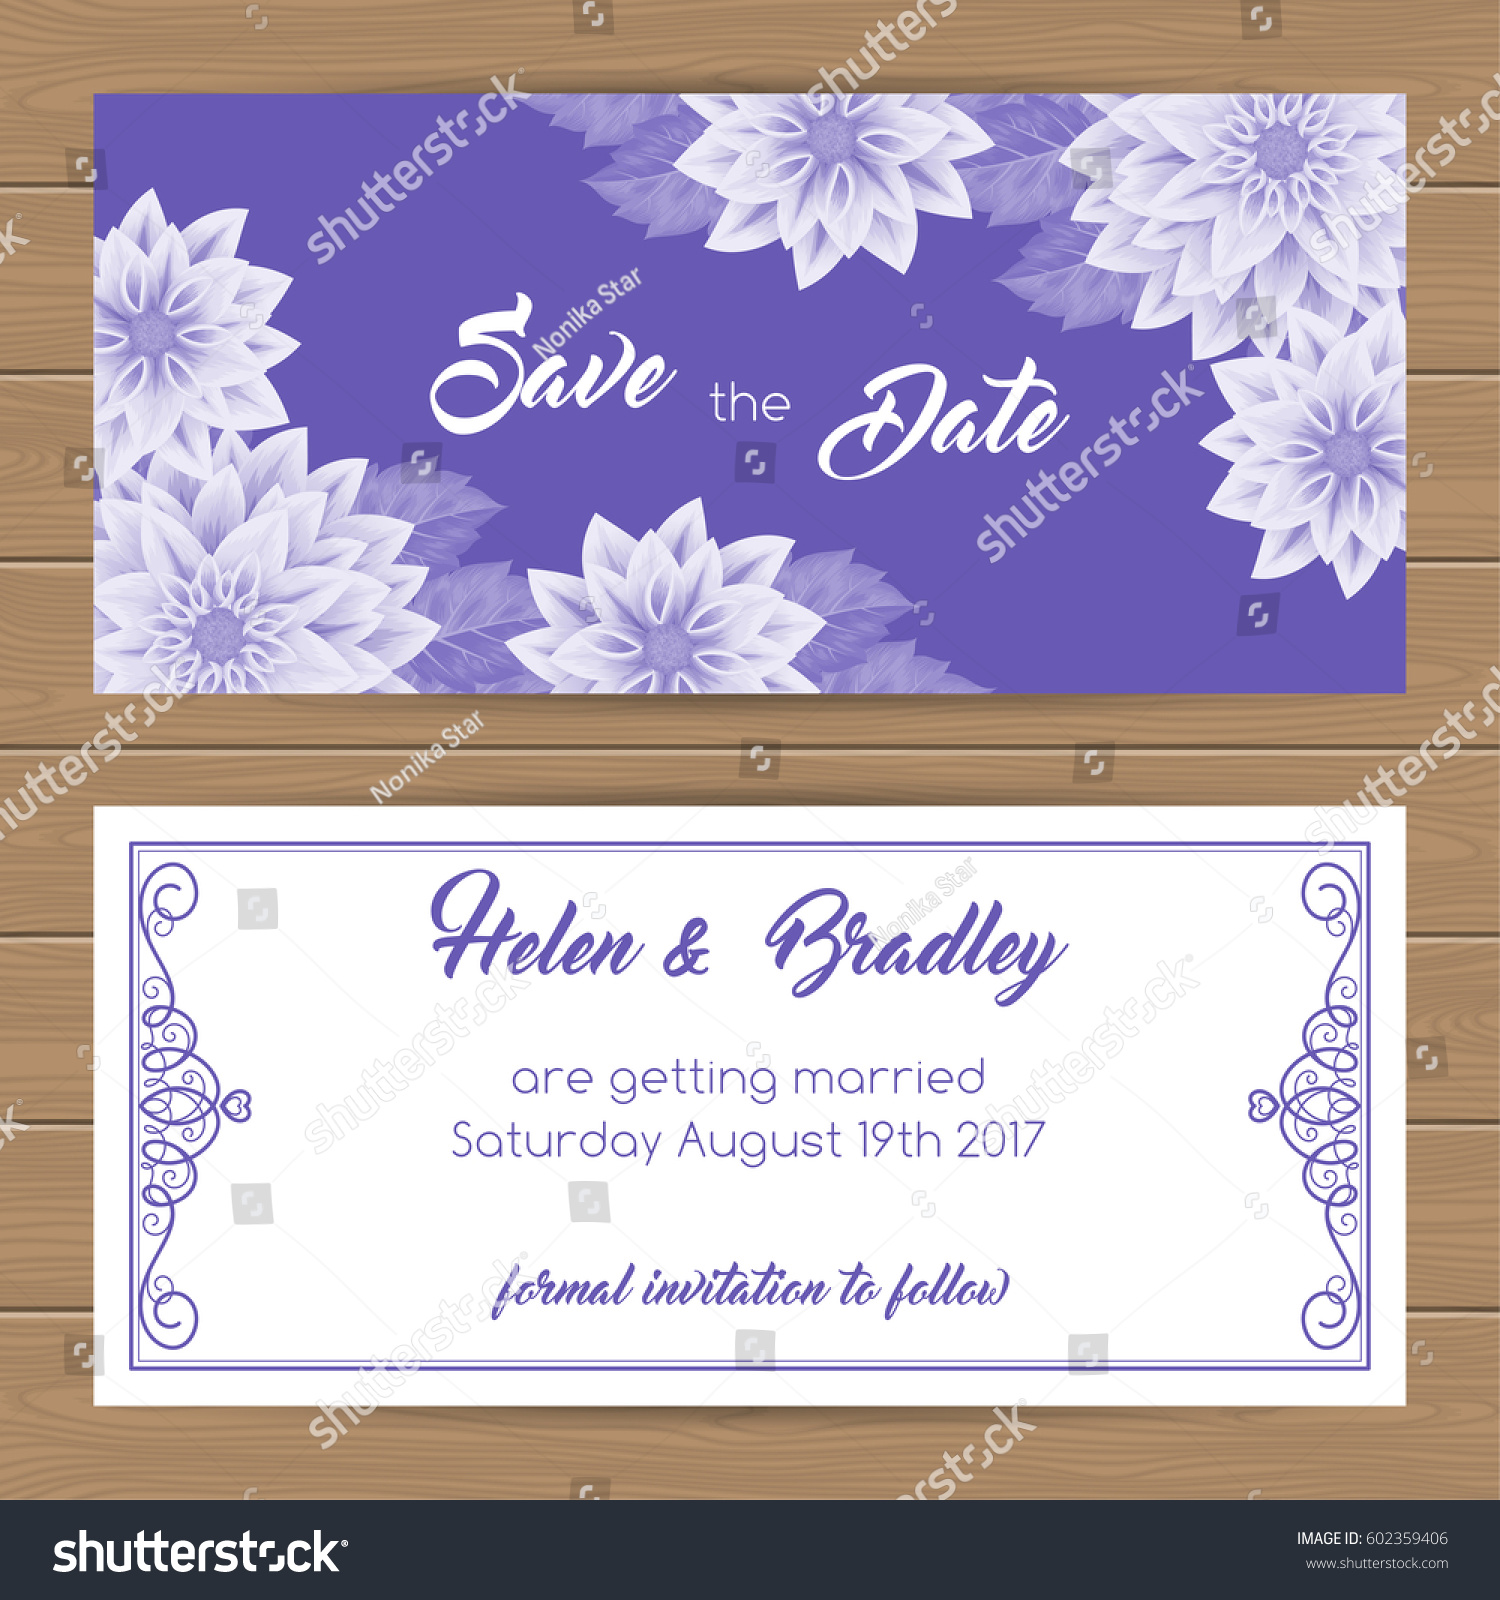 online card template